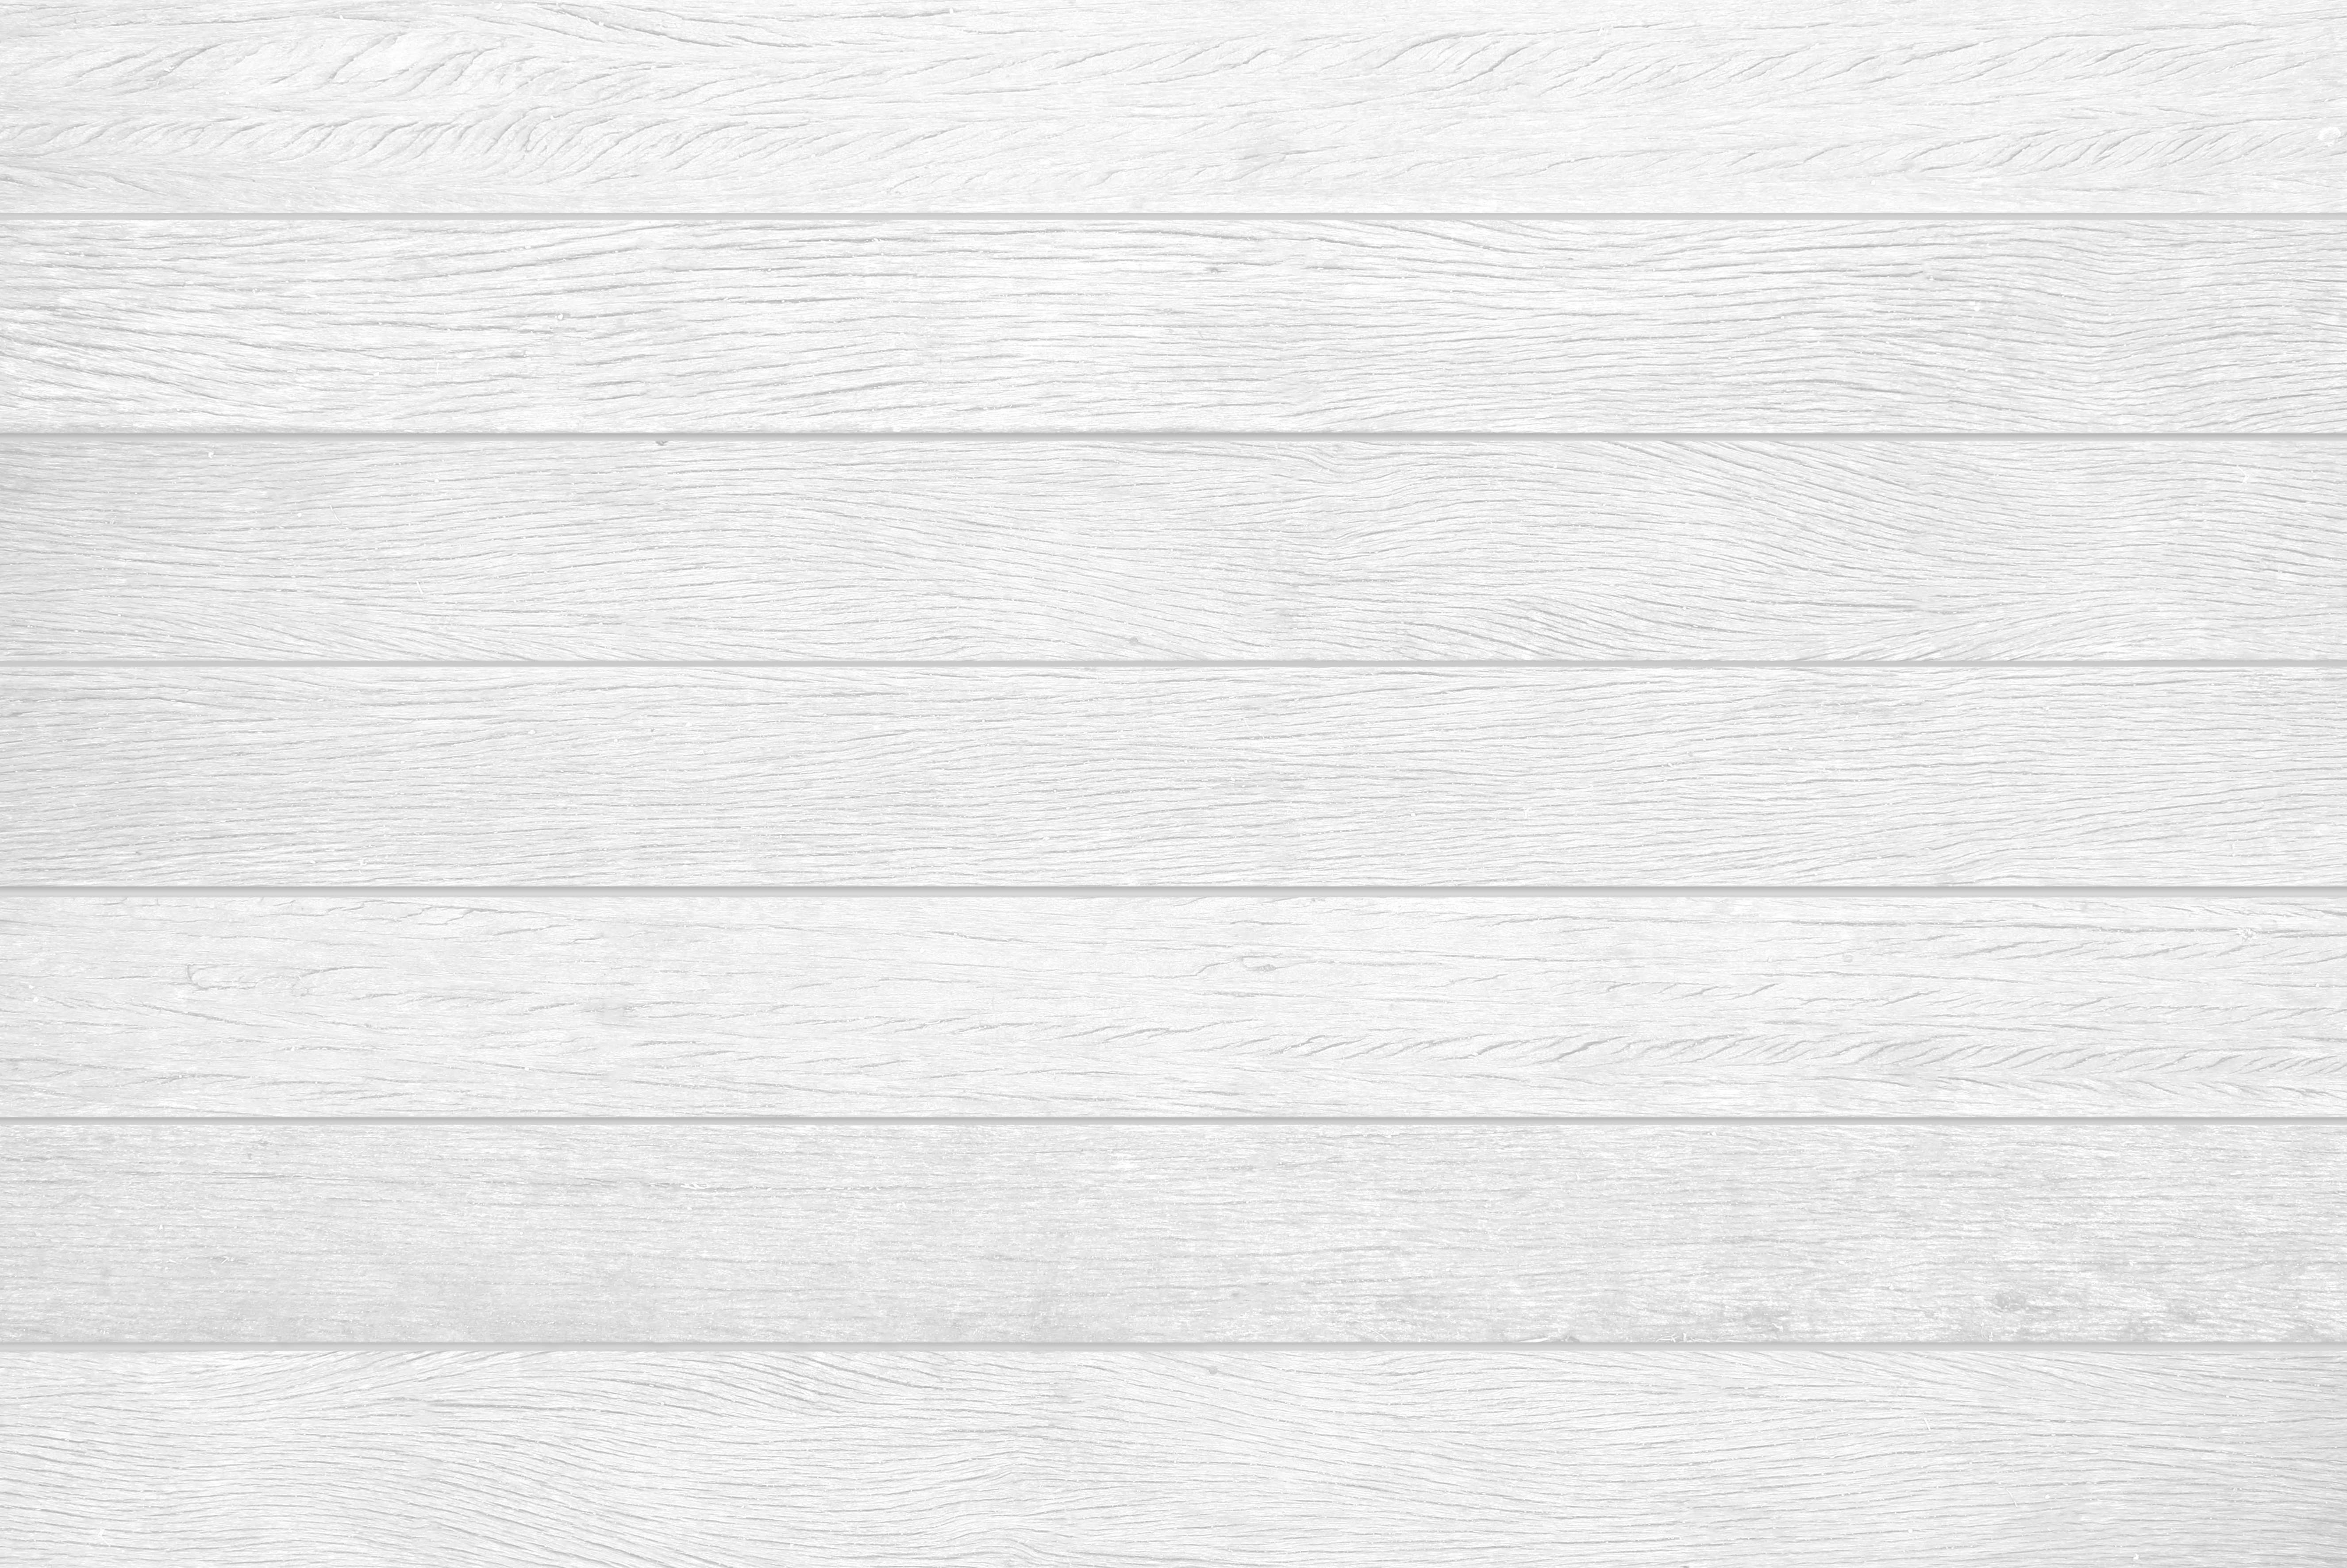 20 White Wood Floor BG Textures by sanches812 on